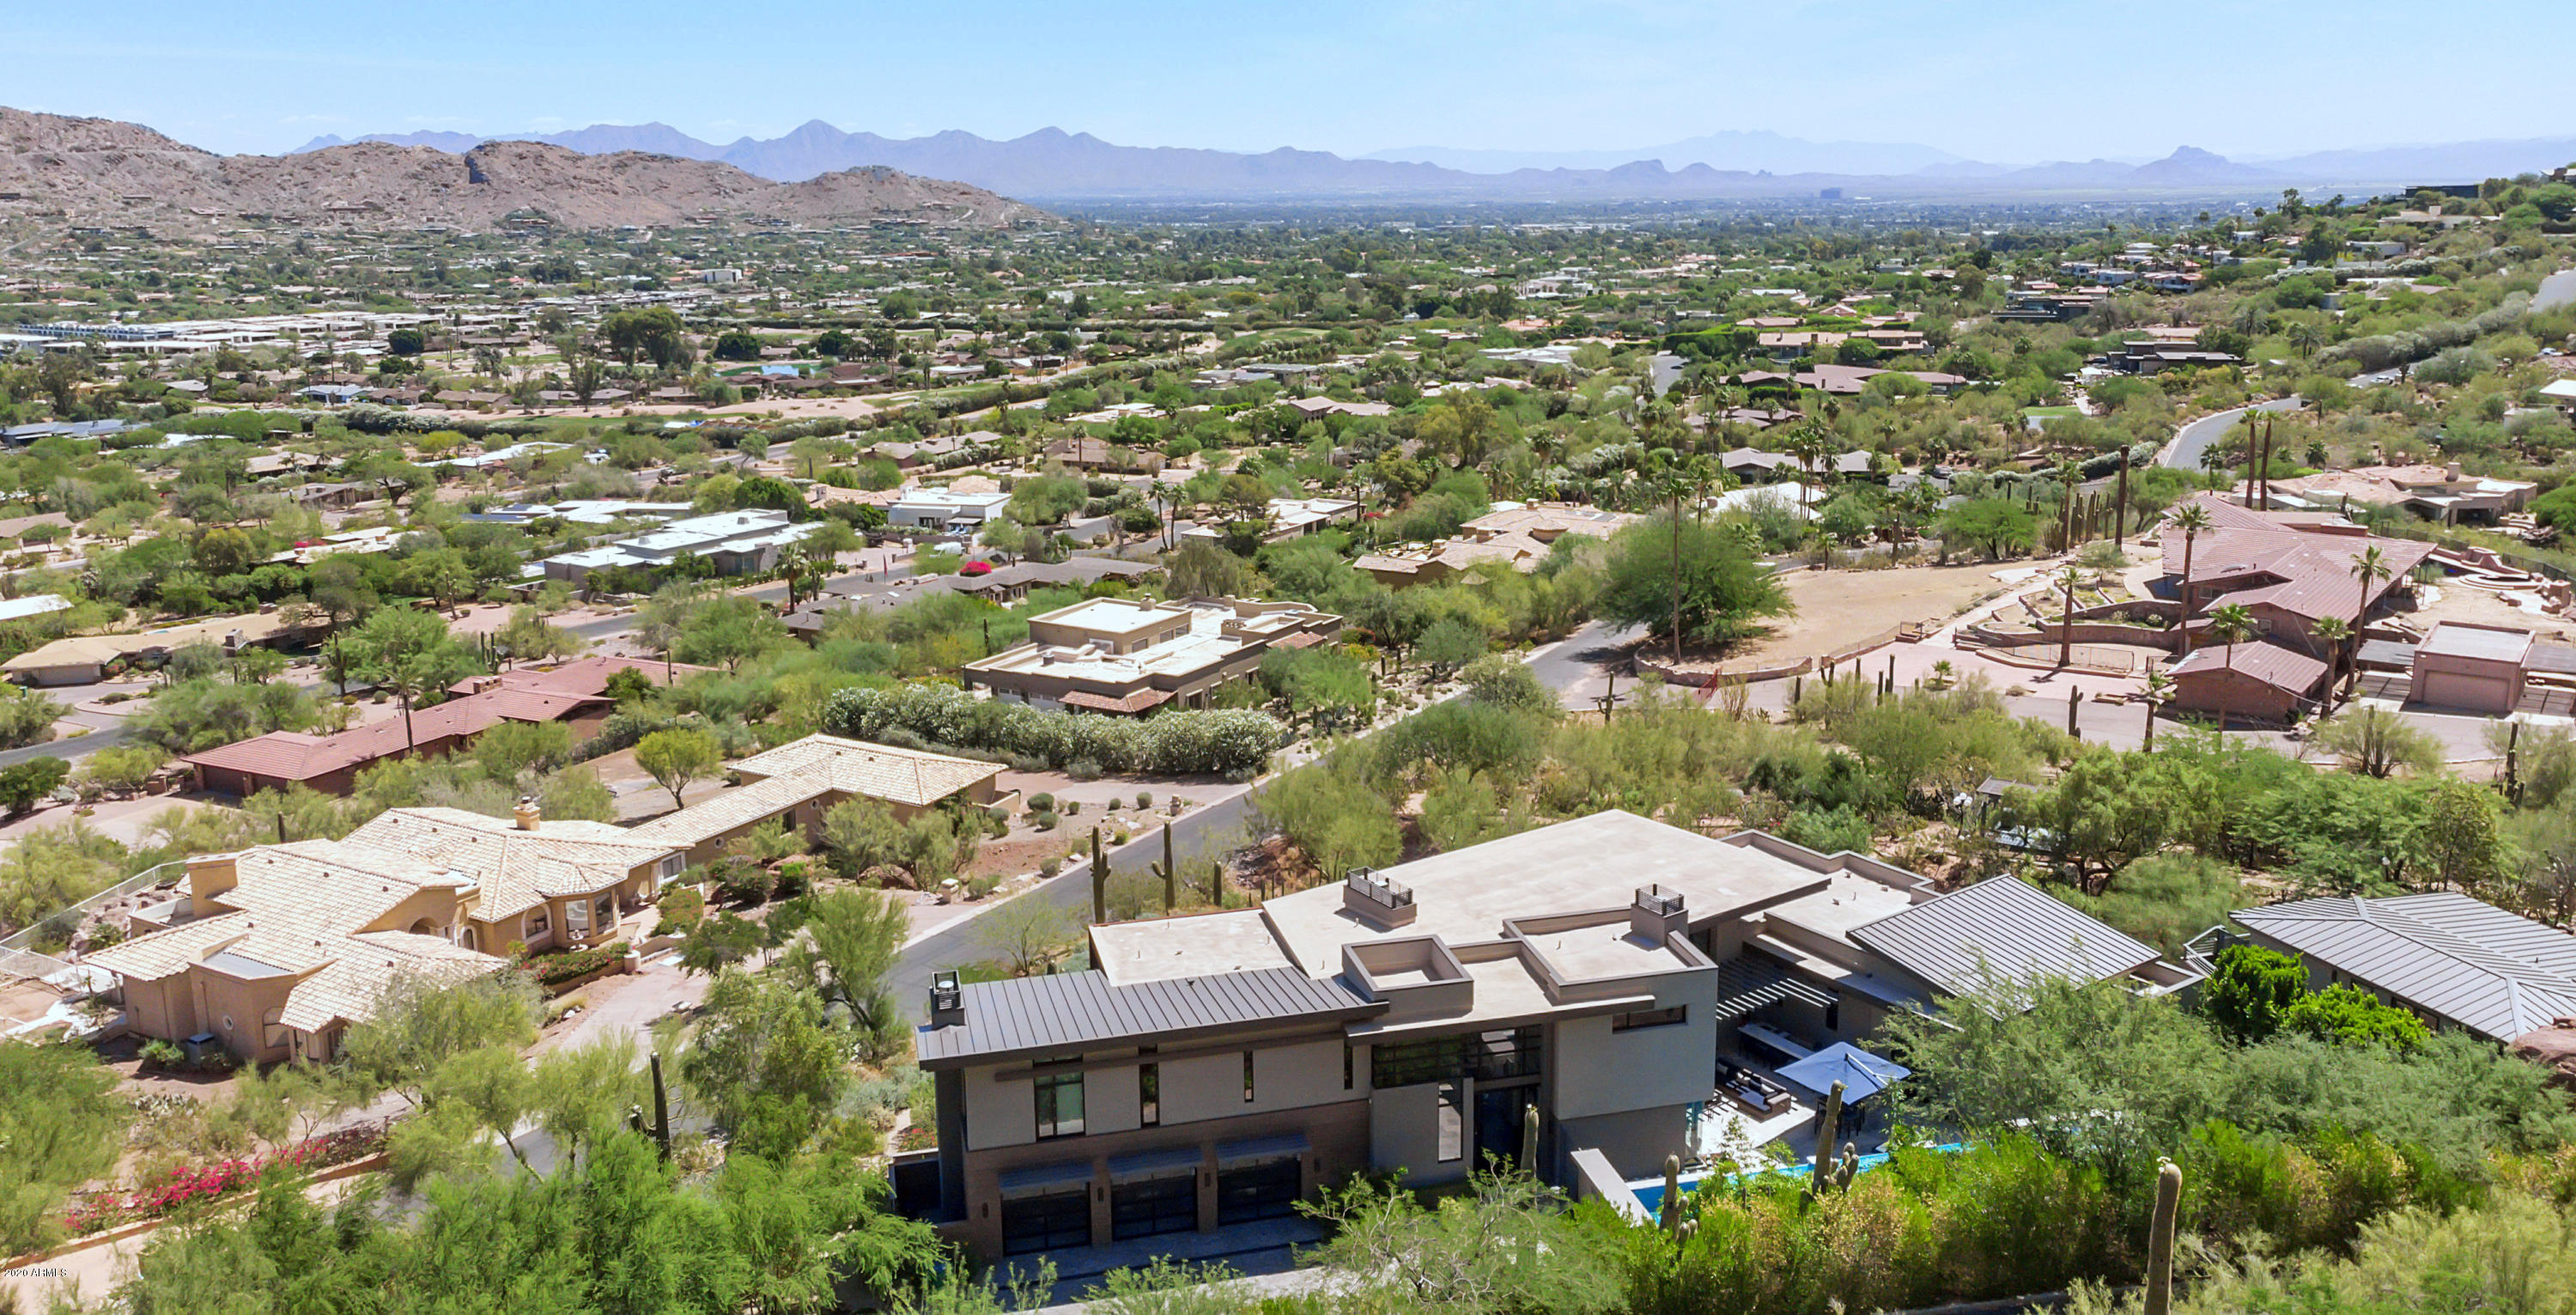 MLS 6085235 5237 E SOLANO Drive, Paradise Valley, AZ 85253 Paradise Valley AZ Mountain View